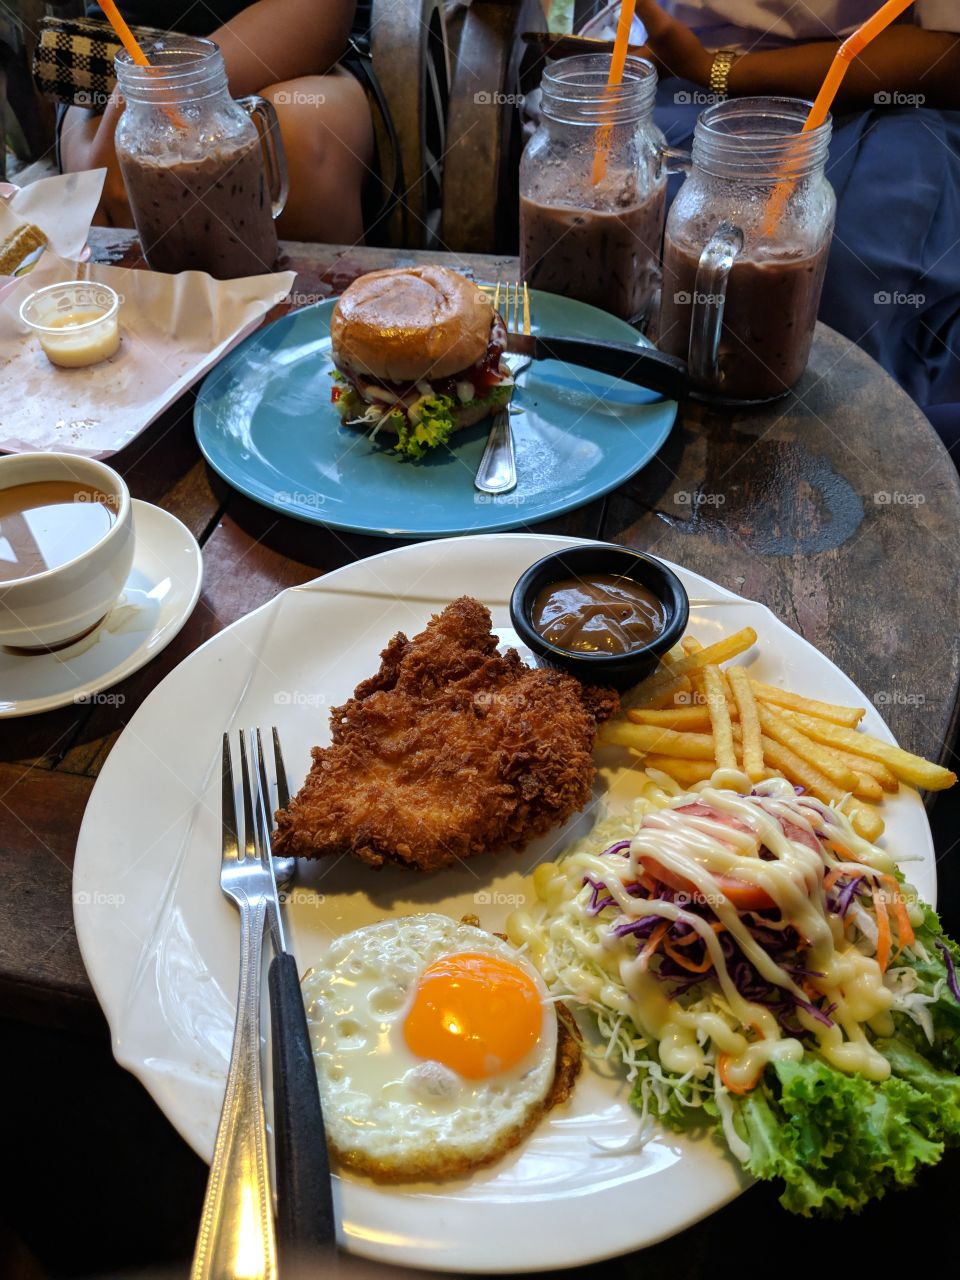 Fried Chicken Steak with egg and fries also salad